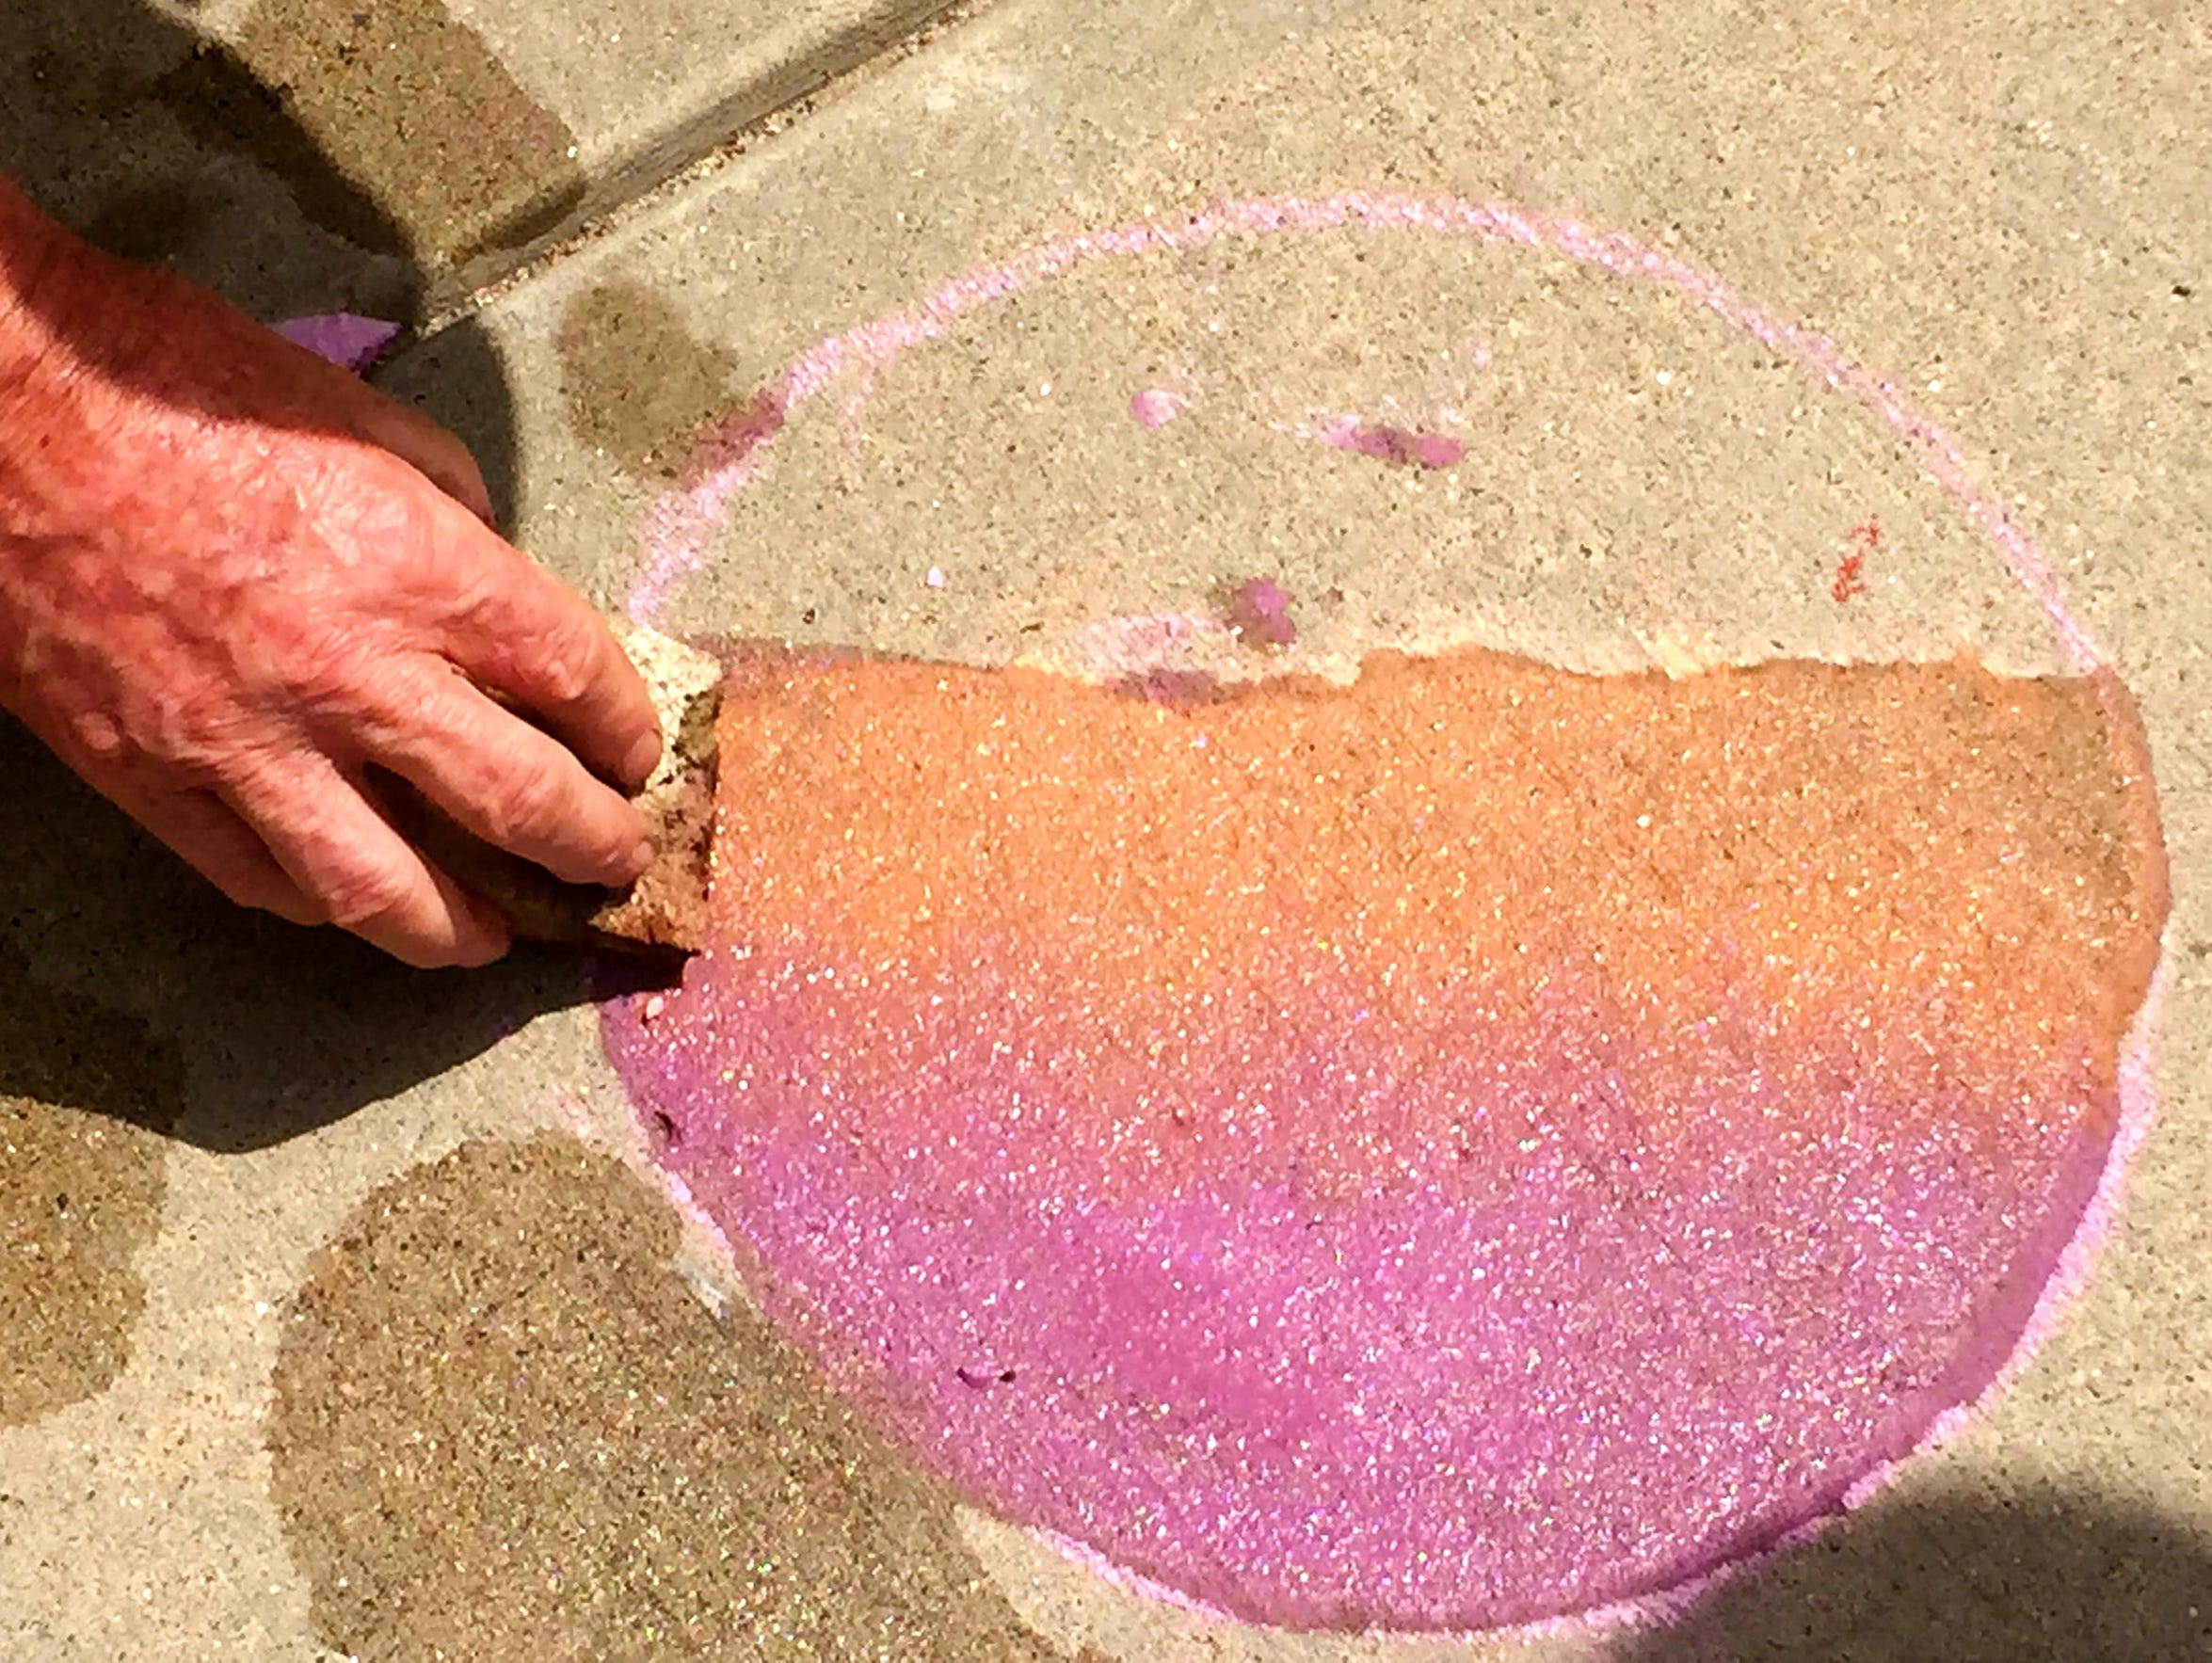 Using a damp sponge to blend dry chalk will allow the